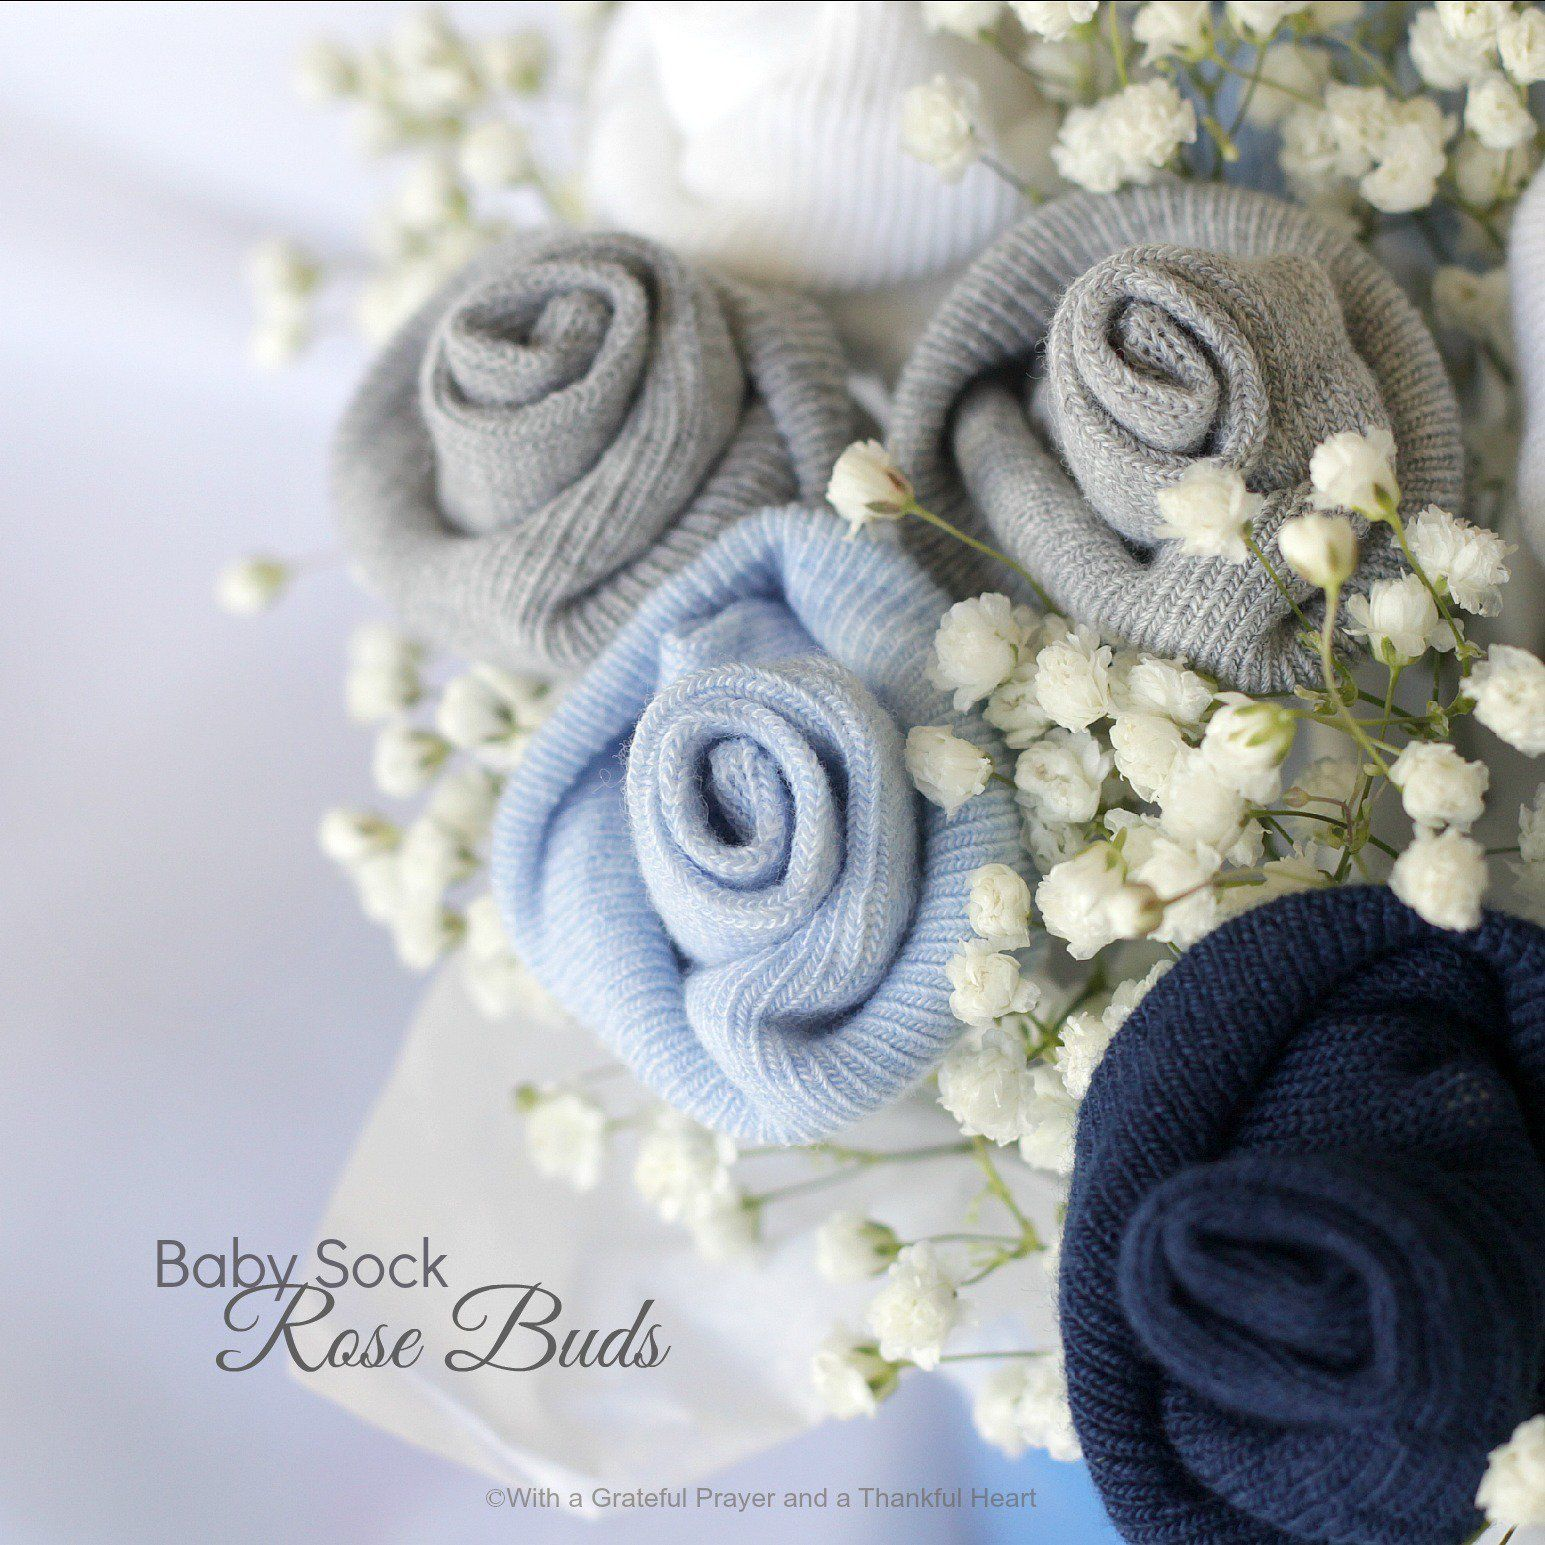 Diy baby socks rose flower bouquet great baby gift idea diy diy baby socks rose flower bouquet great baby gift idea negle Choice Image